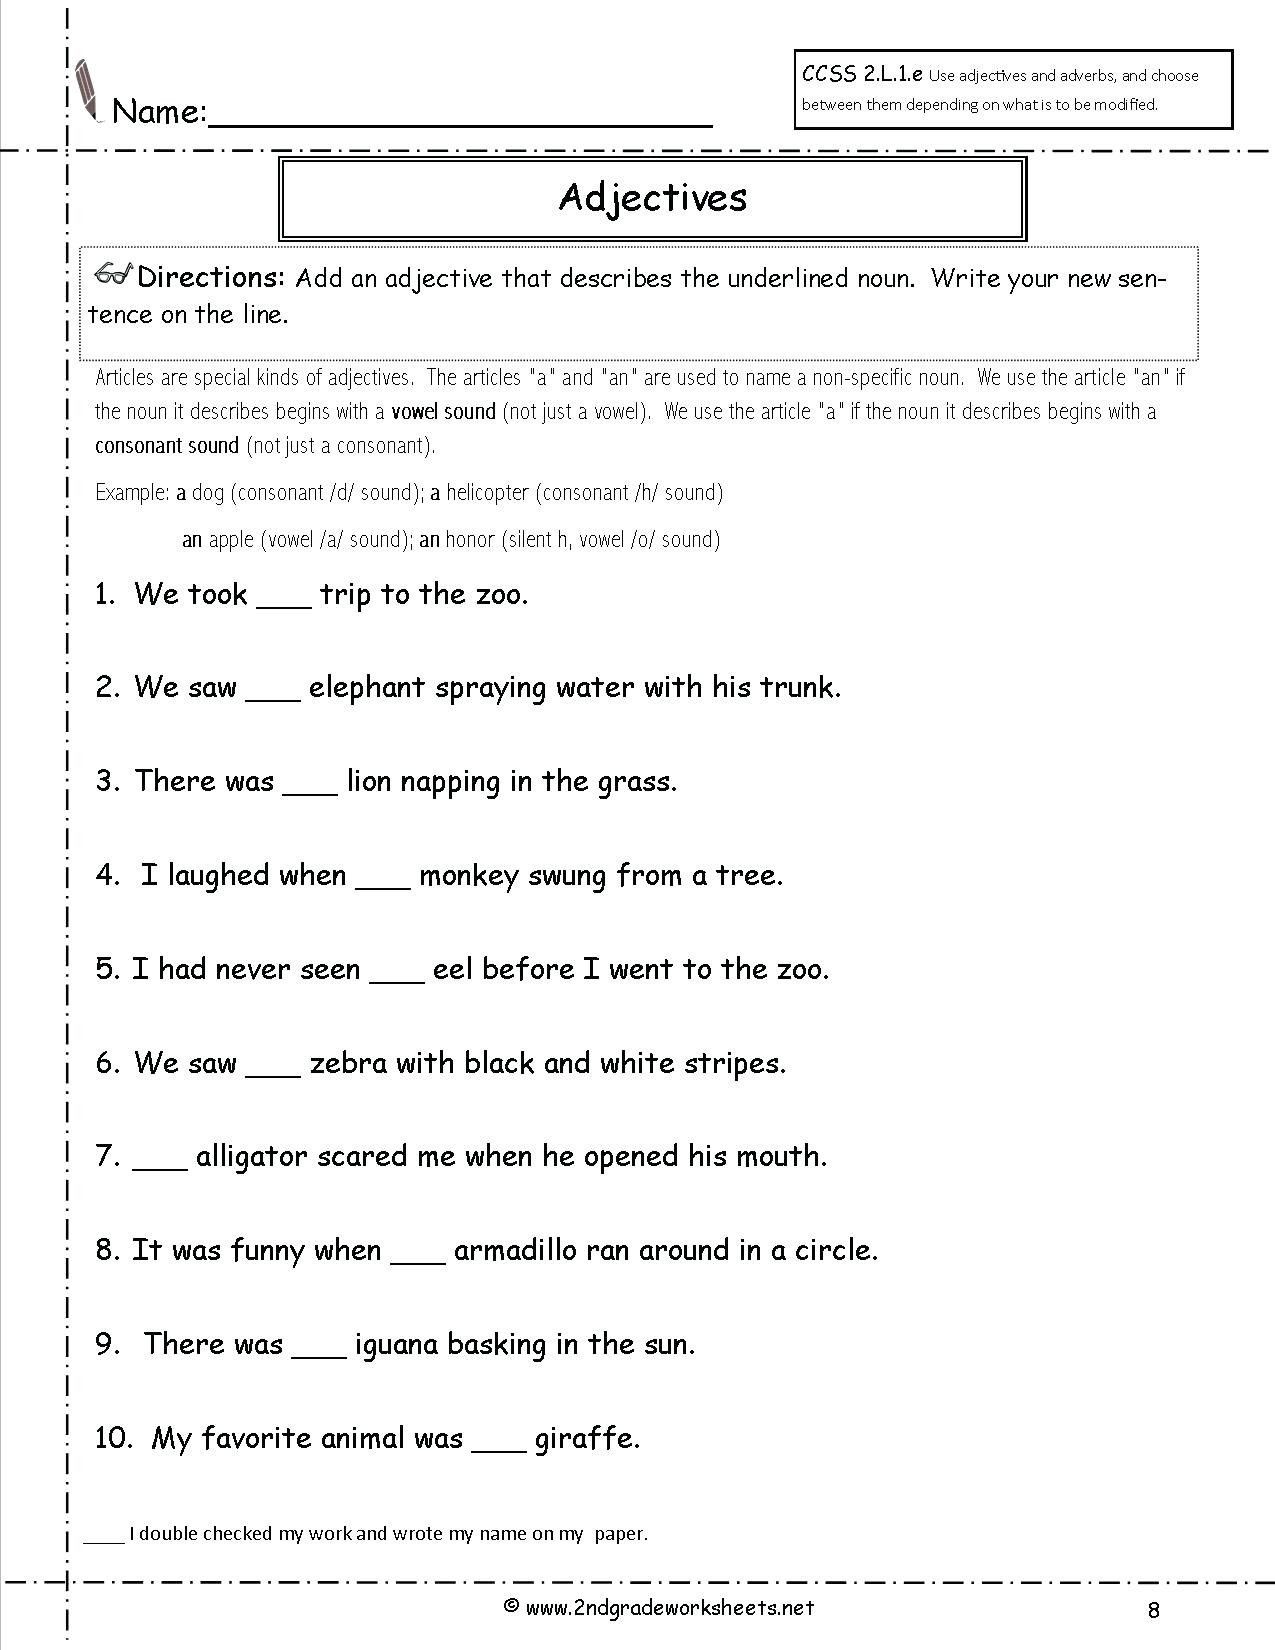 3rd Grade Adjectives Worksheets Articles Adjectives Worksheet 2nd Grade